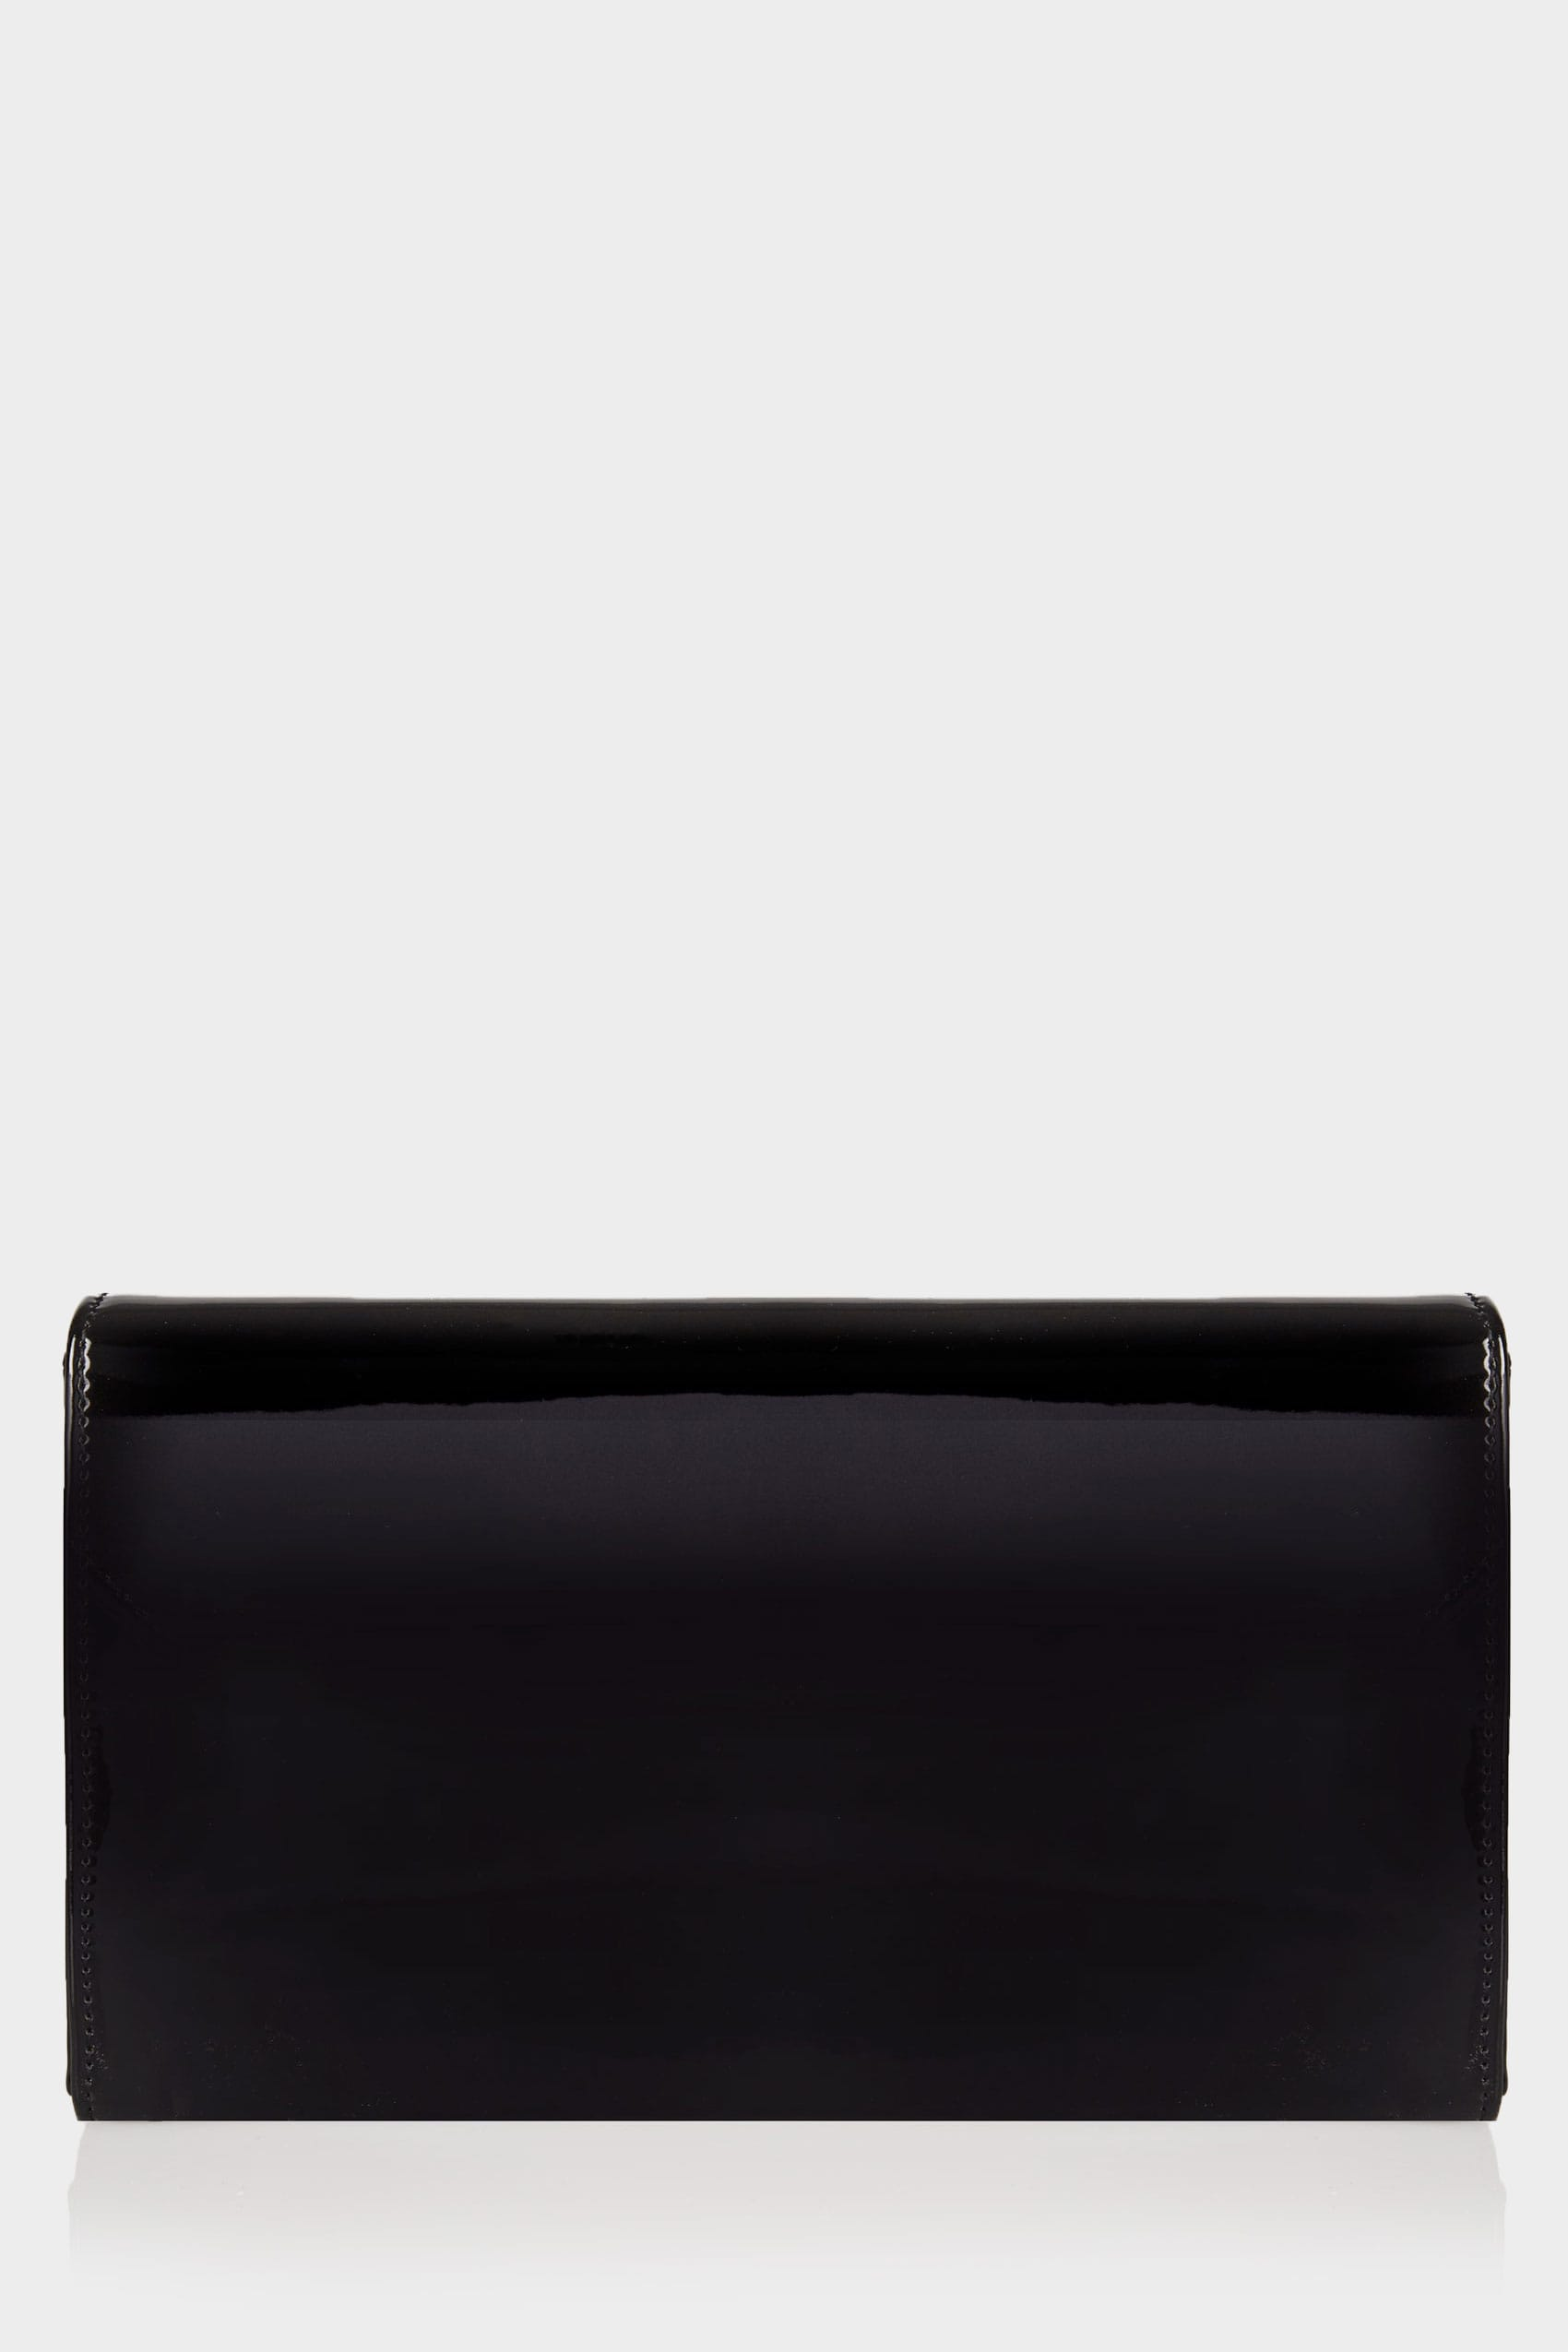 terms and conditions template for online shop - schwarze clutch tasche mit schultertr ger